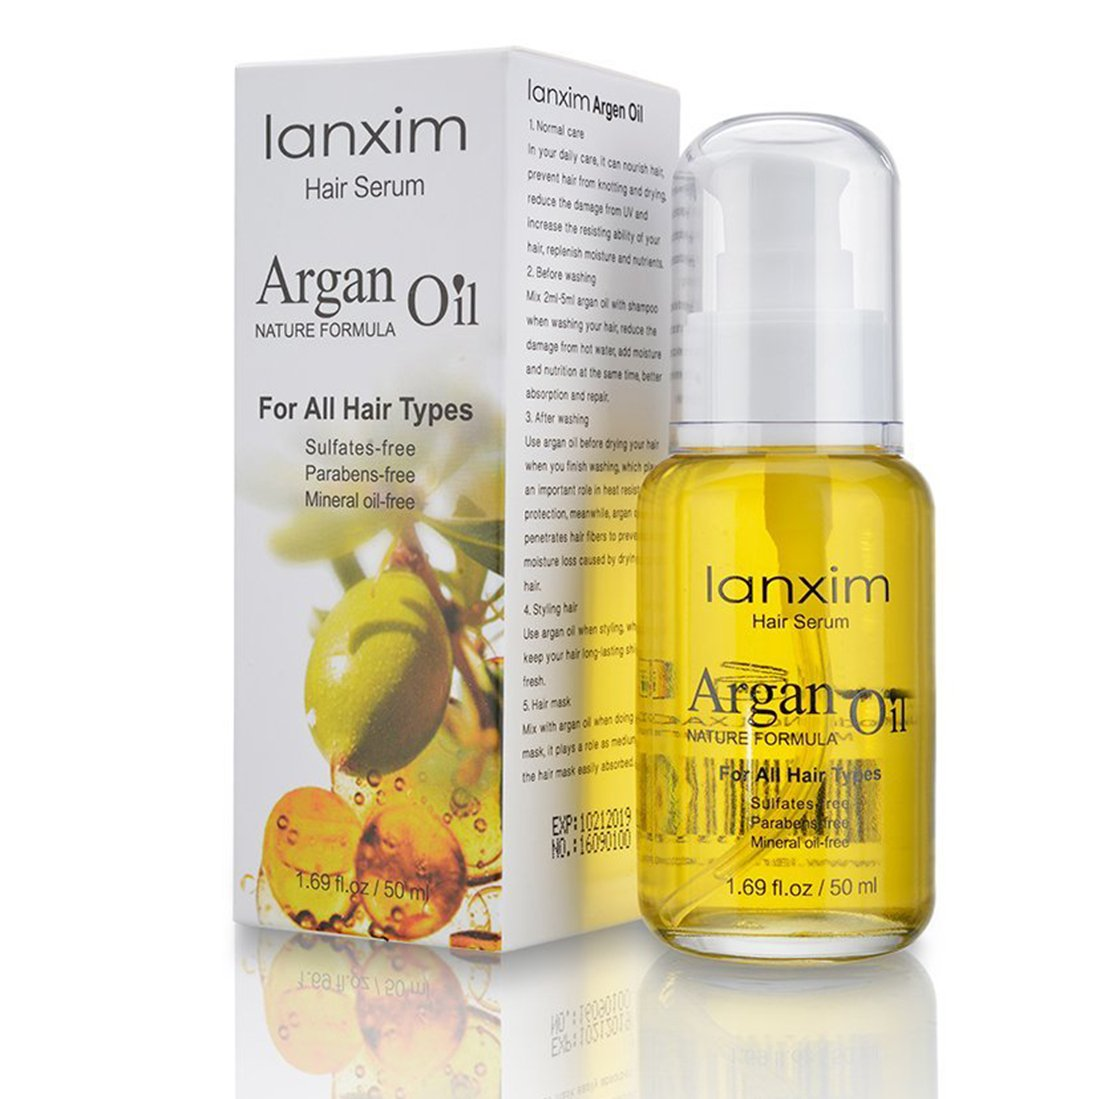 Lanxim Moroccan Argan Oil 100% Natural Organic Beauty Argan Oil,Stimulate Growth for Dry and Damaged Hair. Natural Beauty Product for Frizzy Hair.The Anti Aging, Anti Wrinkle Beauty Secret,1.69 oz